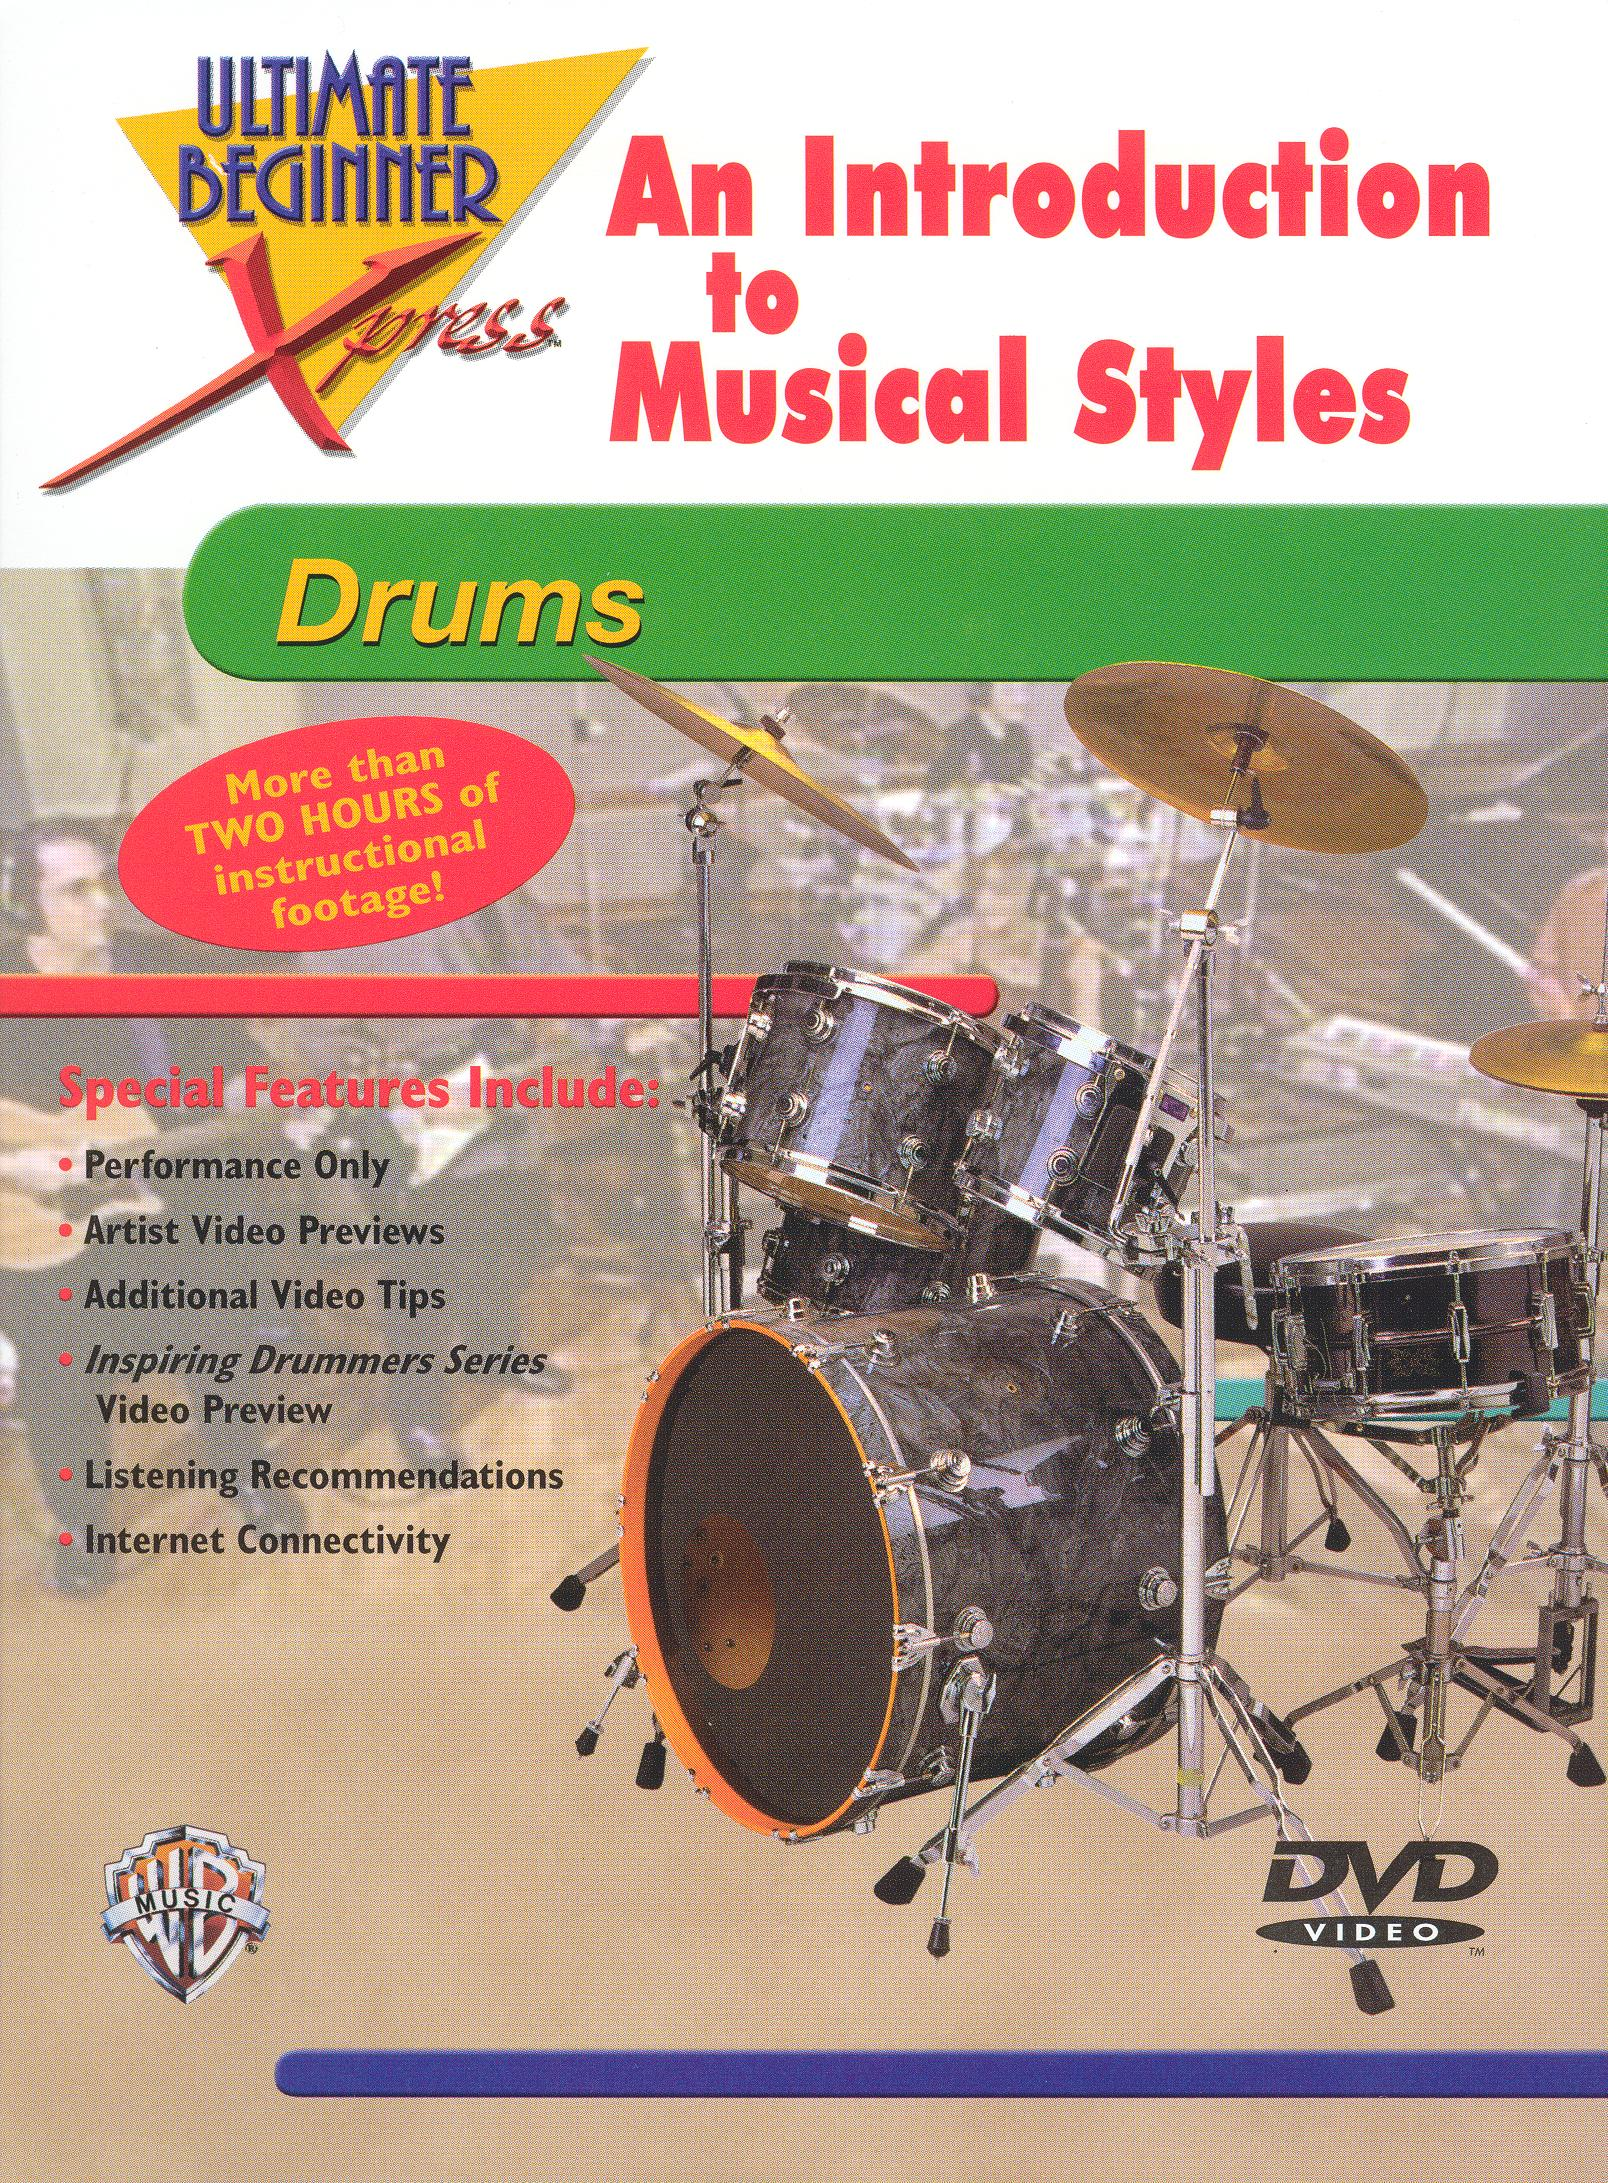 Ultimate Beginner Xpress: An Introduction to Musical Styles - For Drums